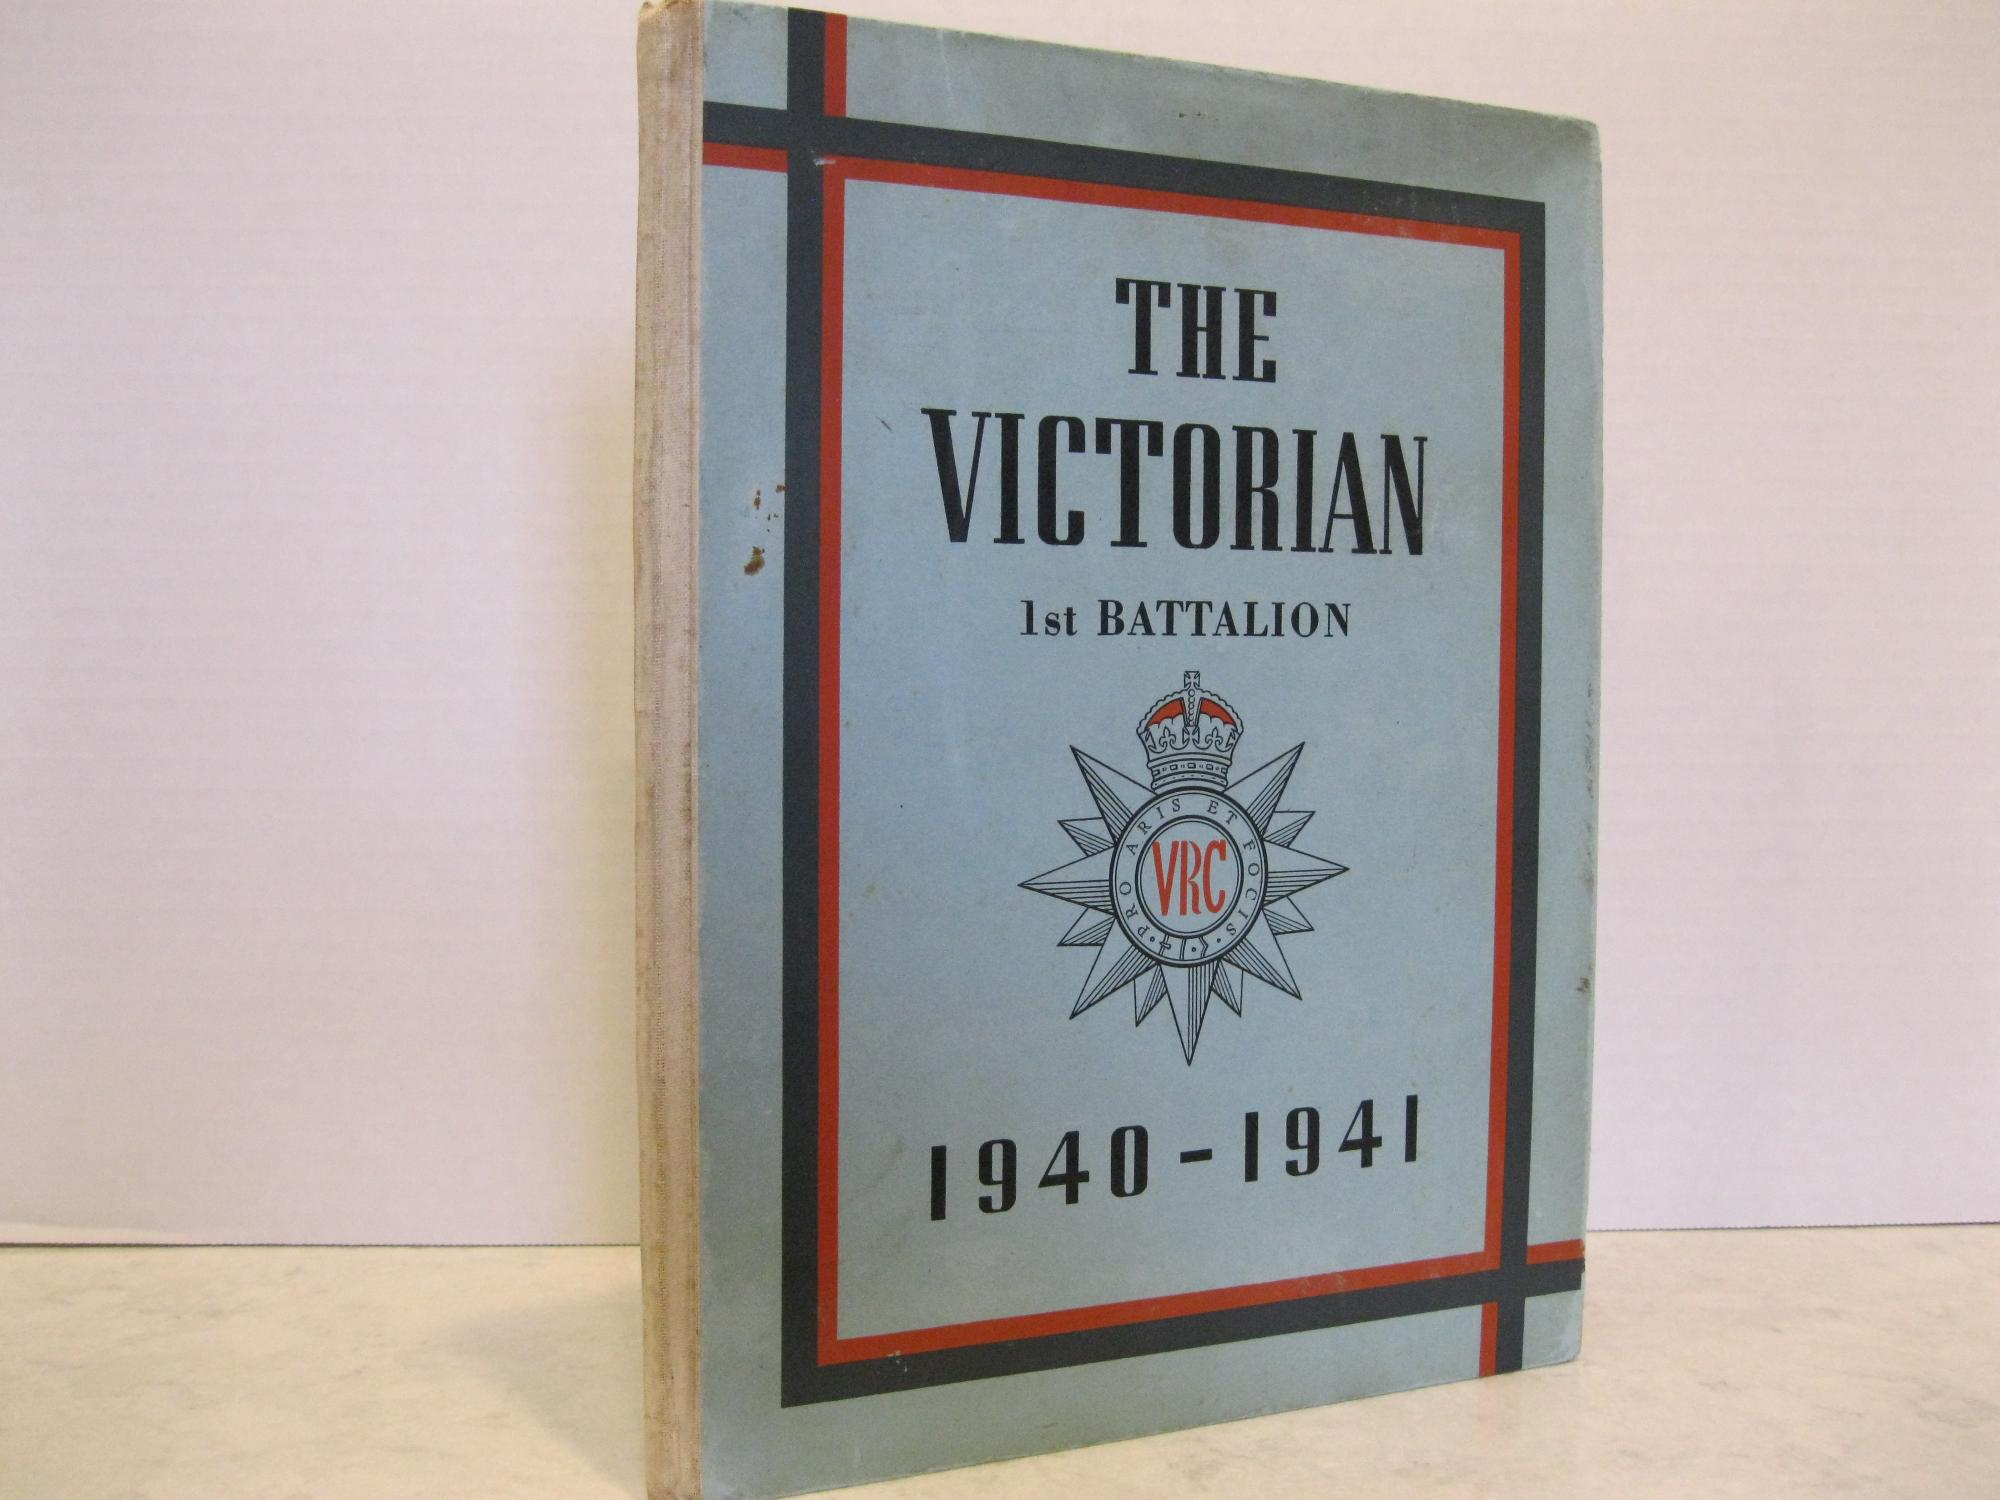 THE_VICTORIAN_1st_BATTALION_19401941___Very_Good_Hardcover